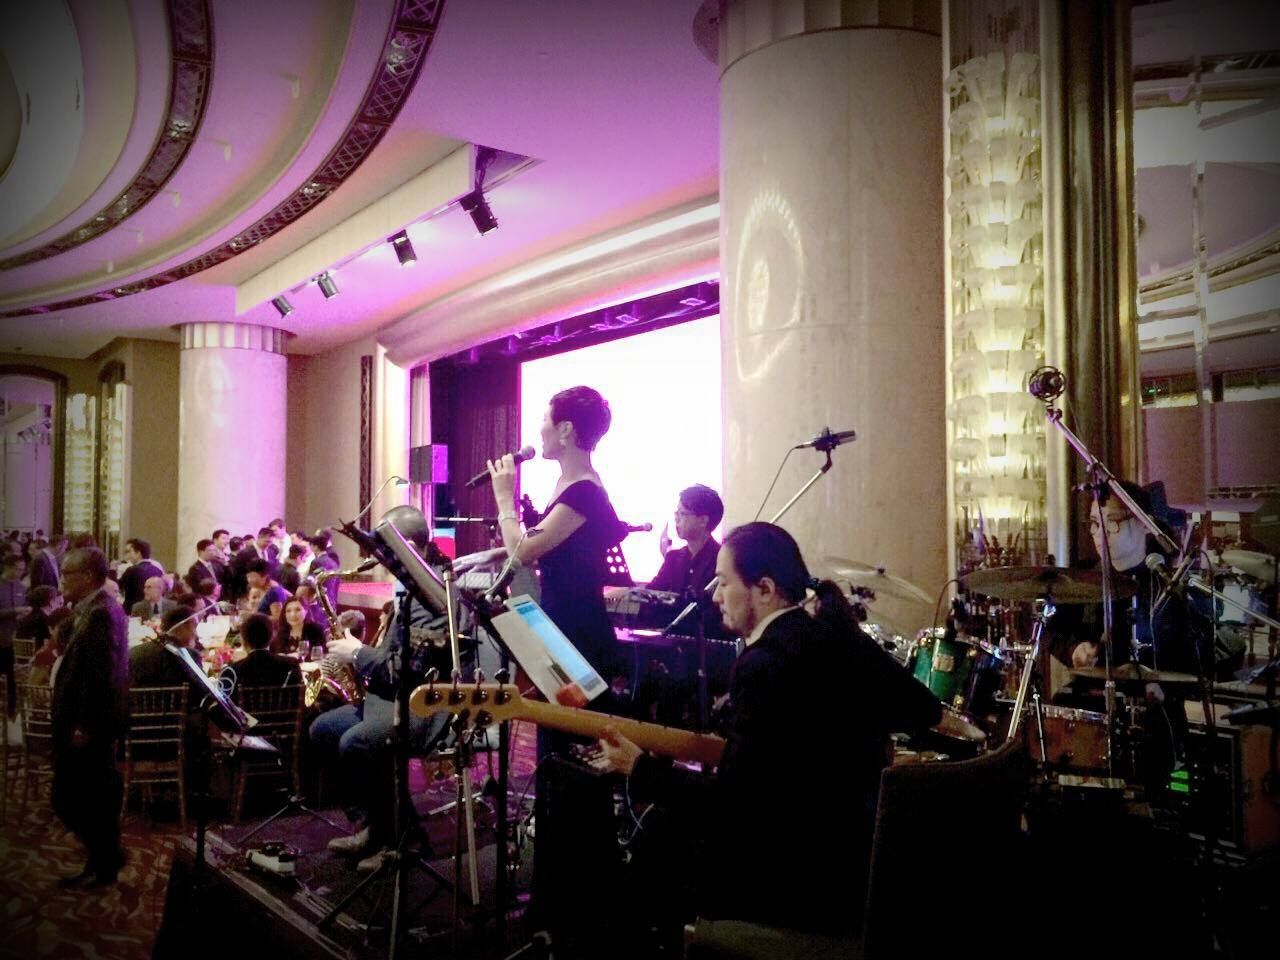 Unison Production Live Music band performance - Listing celebration dinner in Grand Hyatt